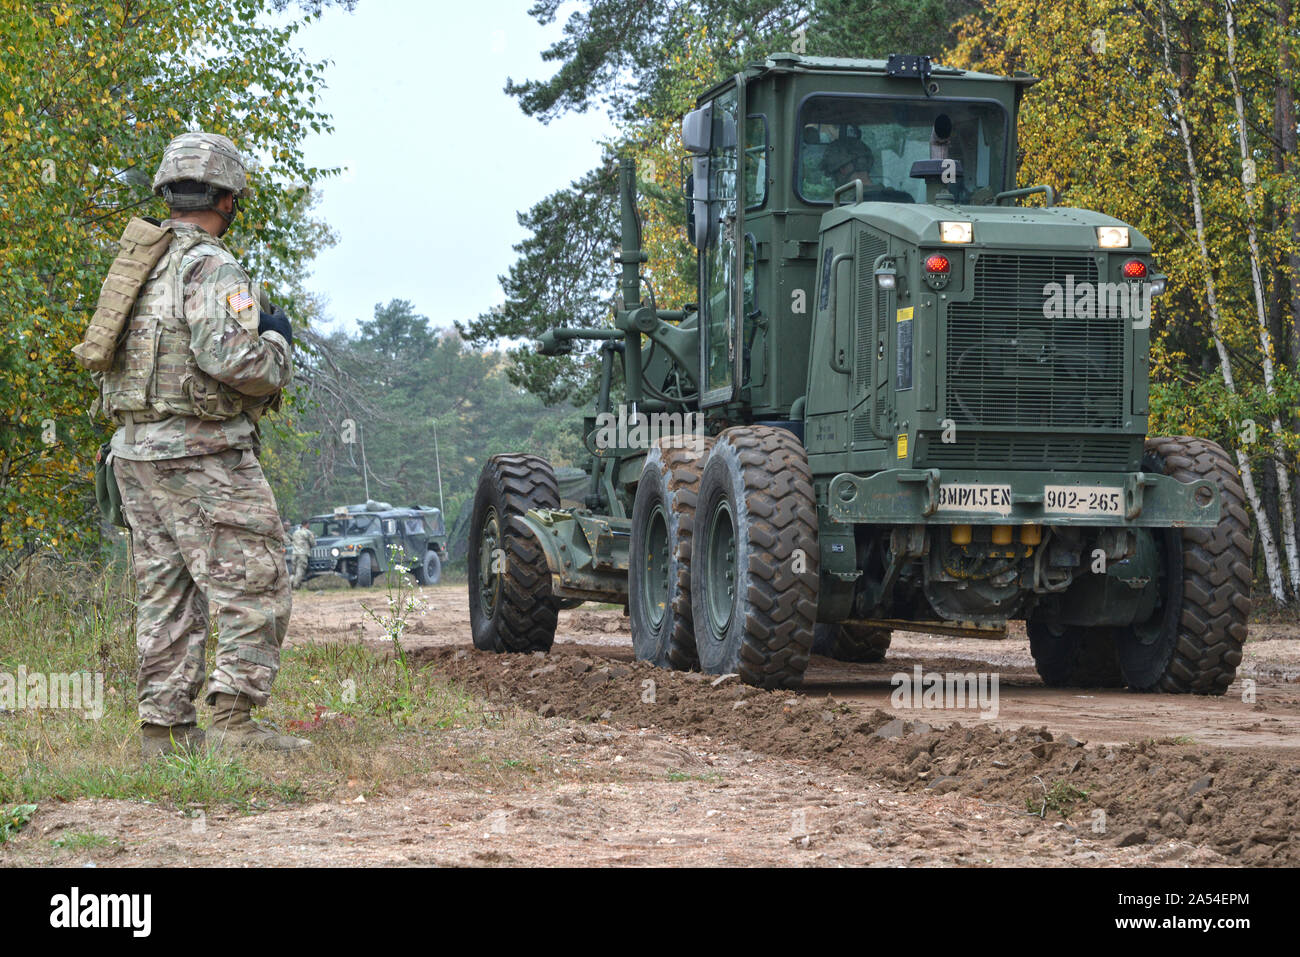 15th Engineer Battalion High Resolution Stock Photography And Images Alamy